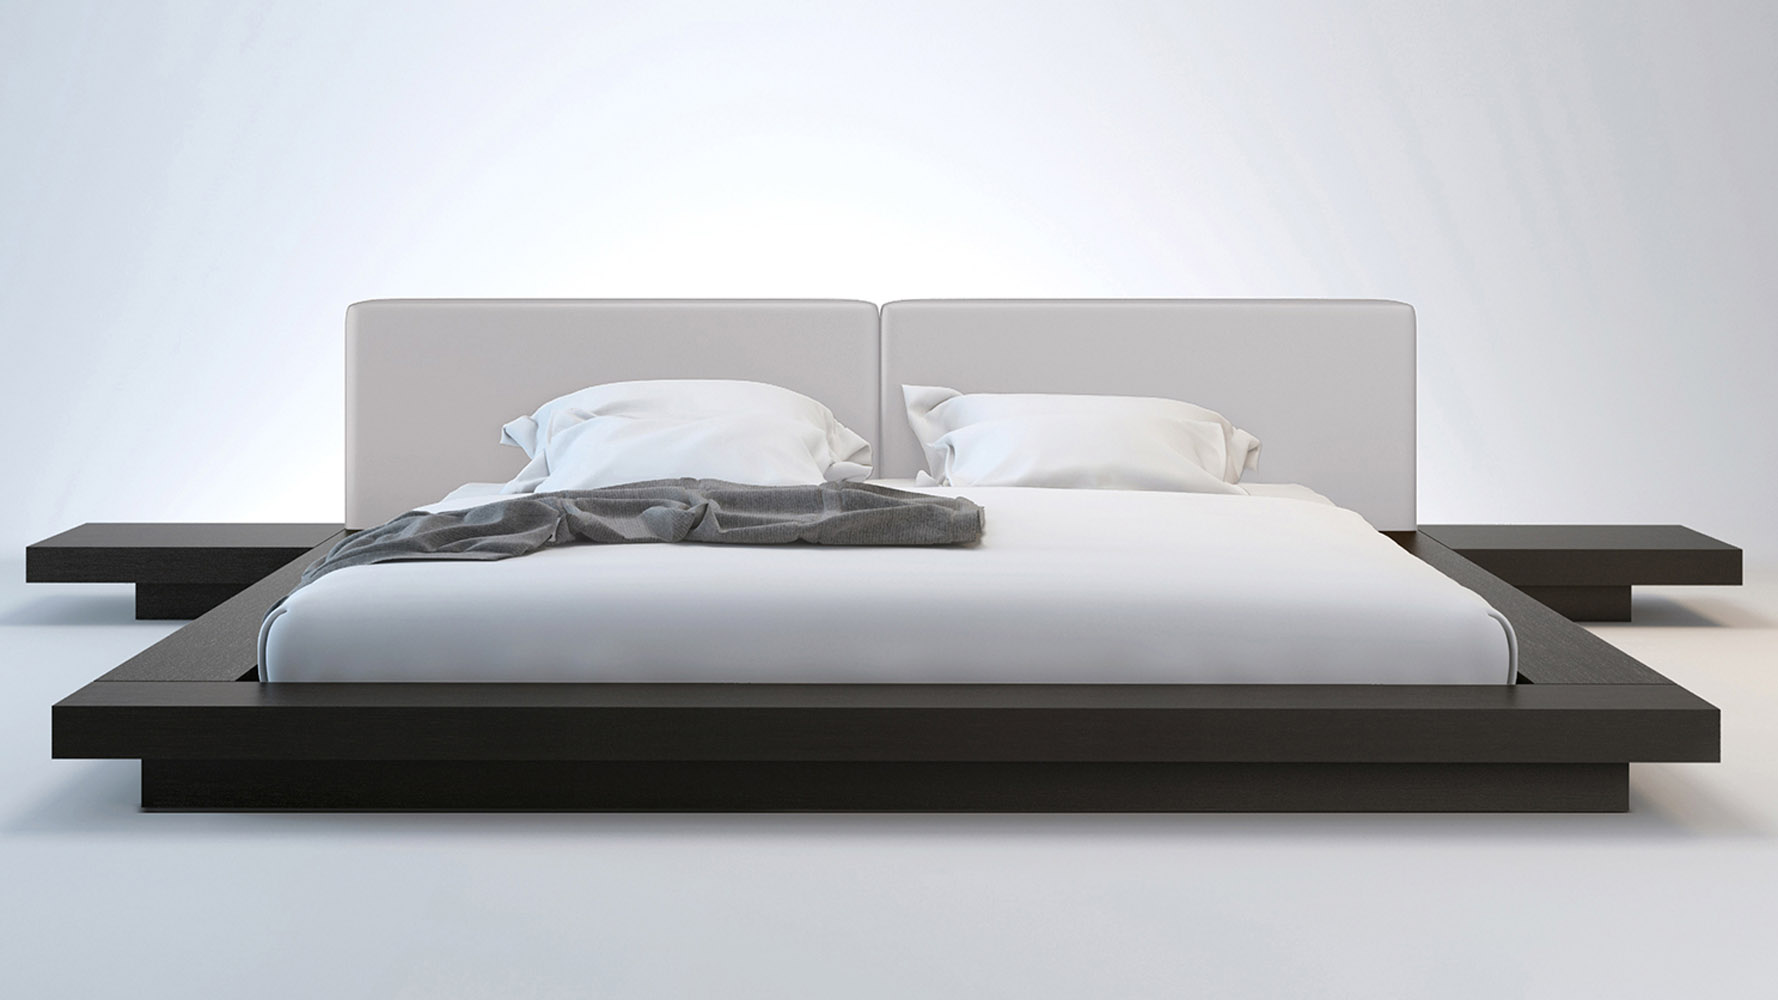 modern bedroom furniture  accents  contemporary bedroom  zuri  - modern bedroom furniture  accents  contemporary bedroom  zuri furniture